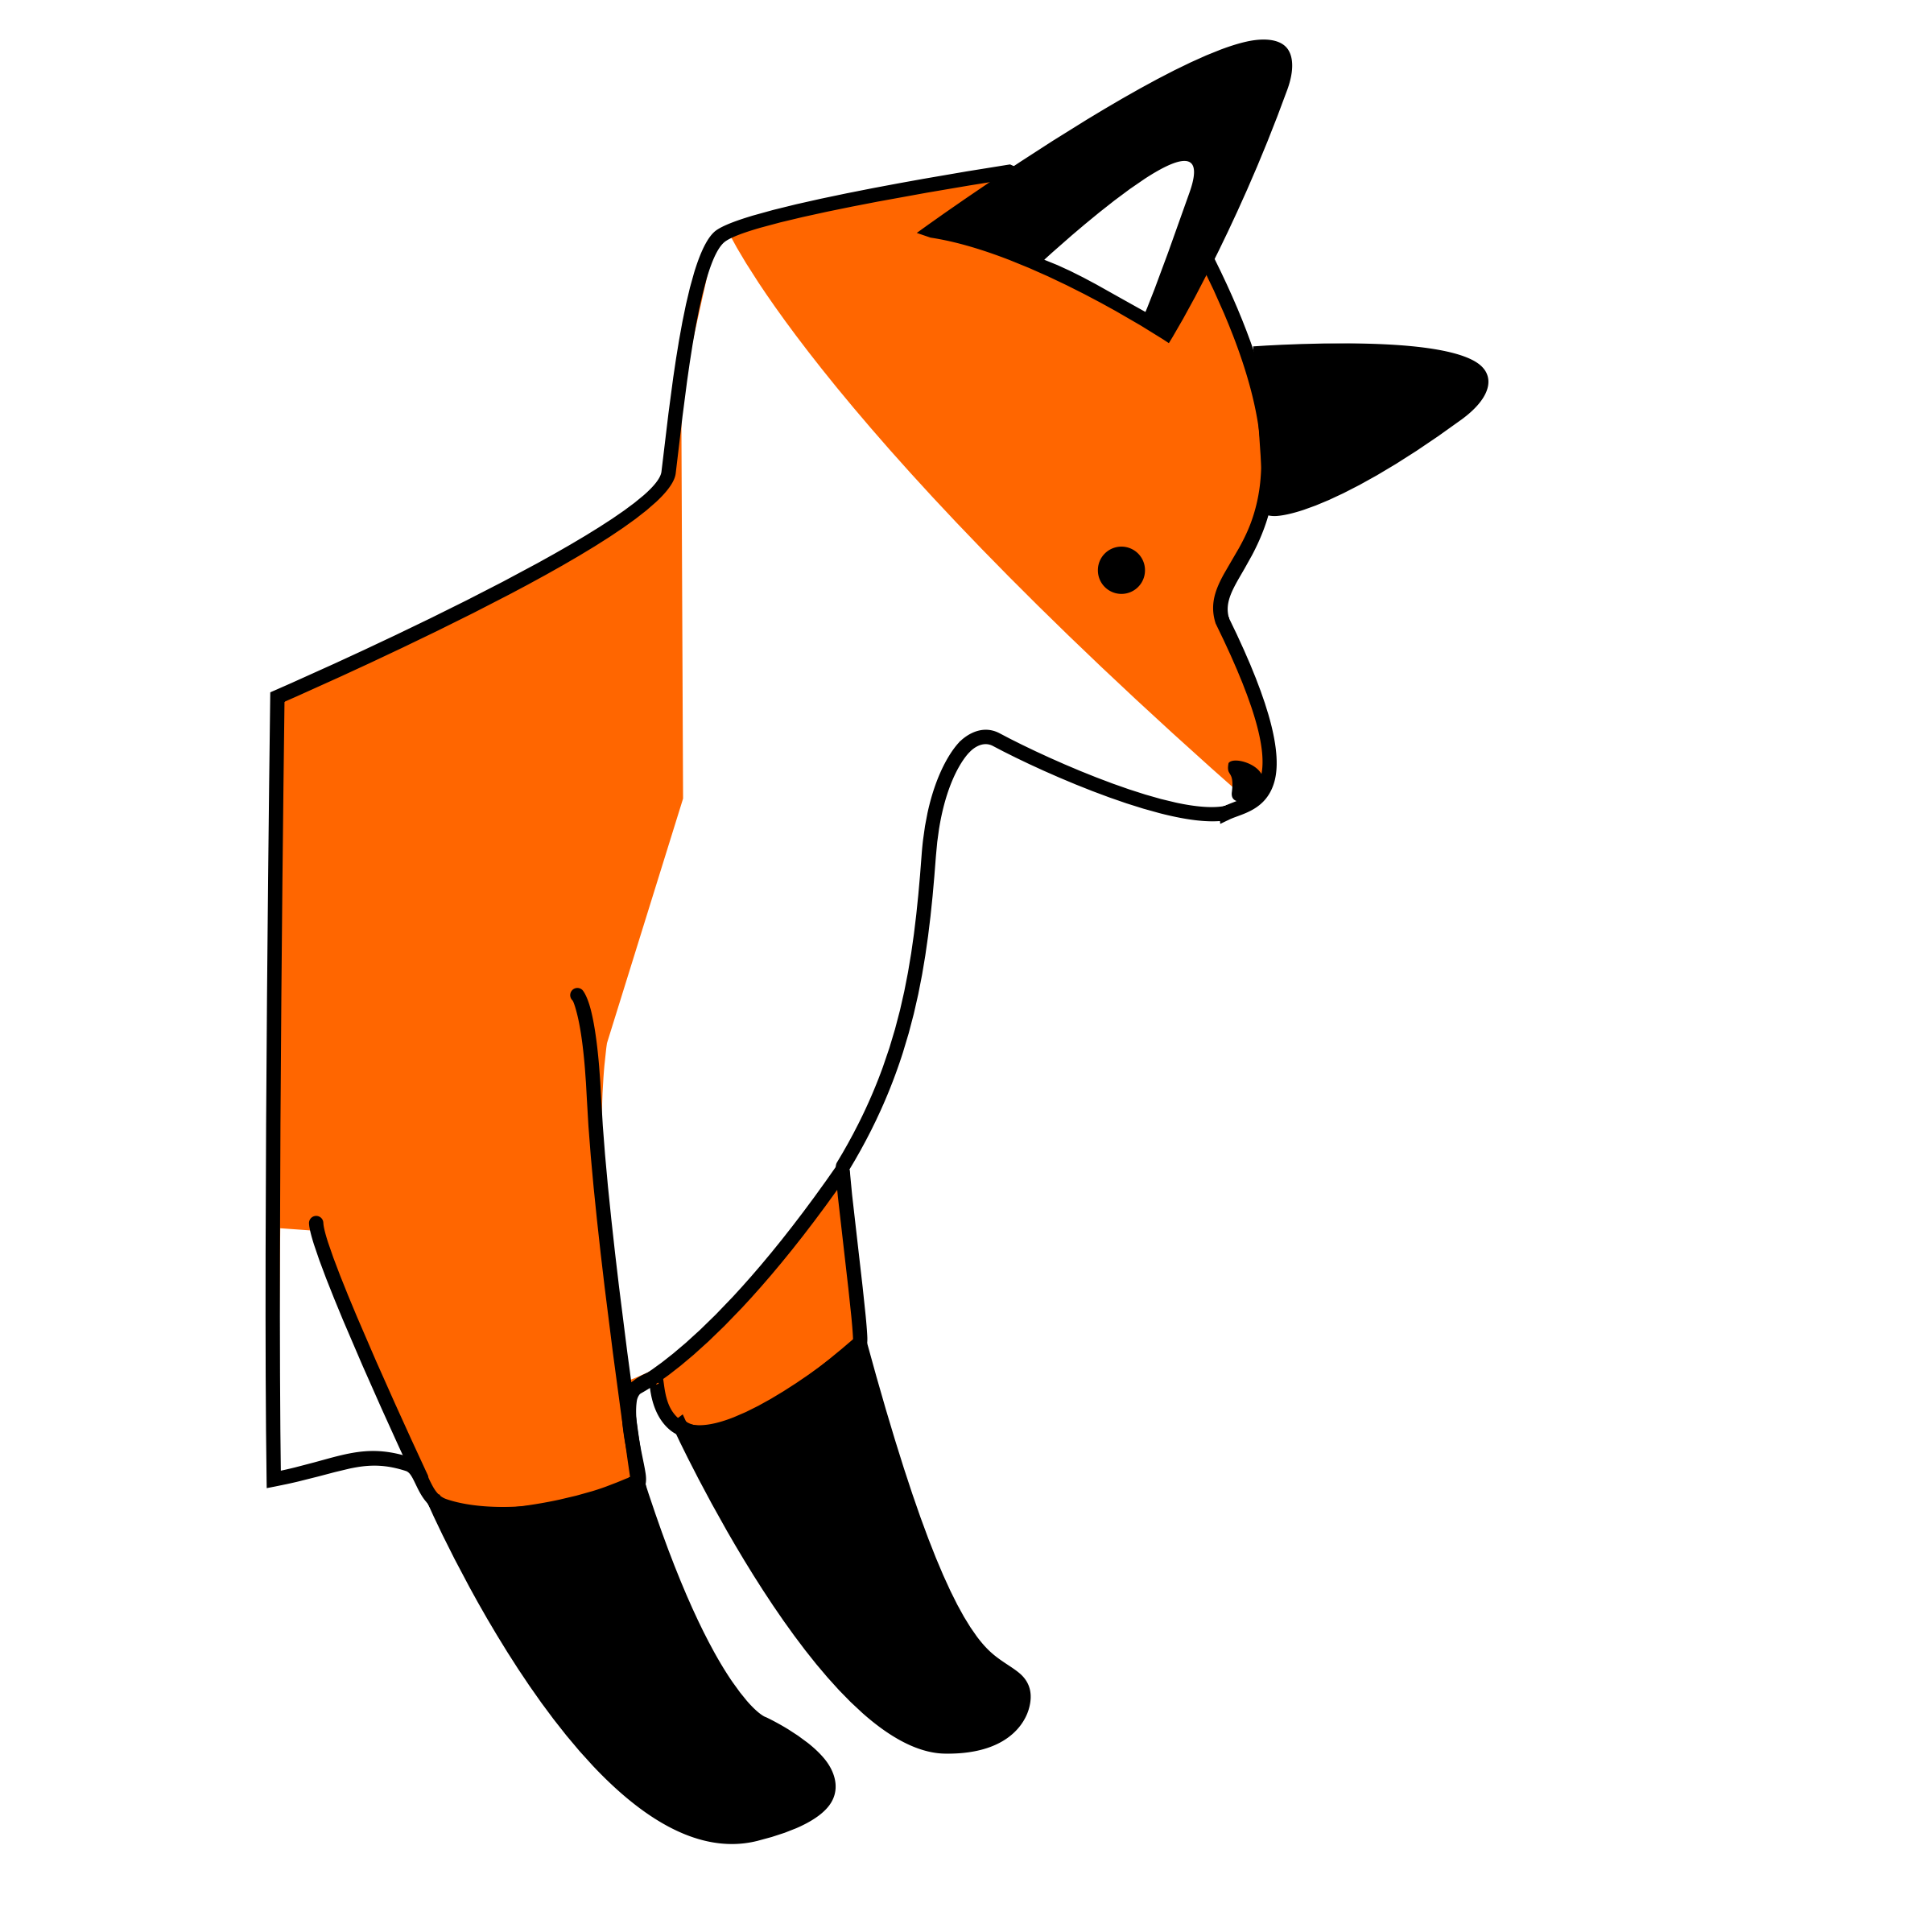 2400x2400 Fox Clip Art Free Vector For Download About